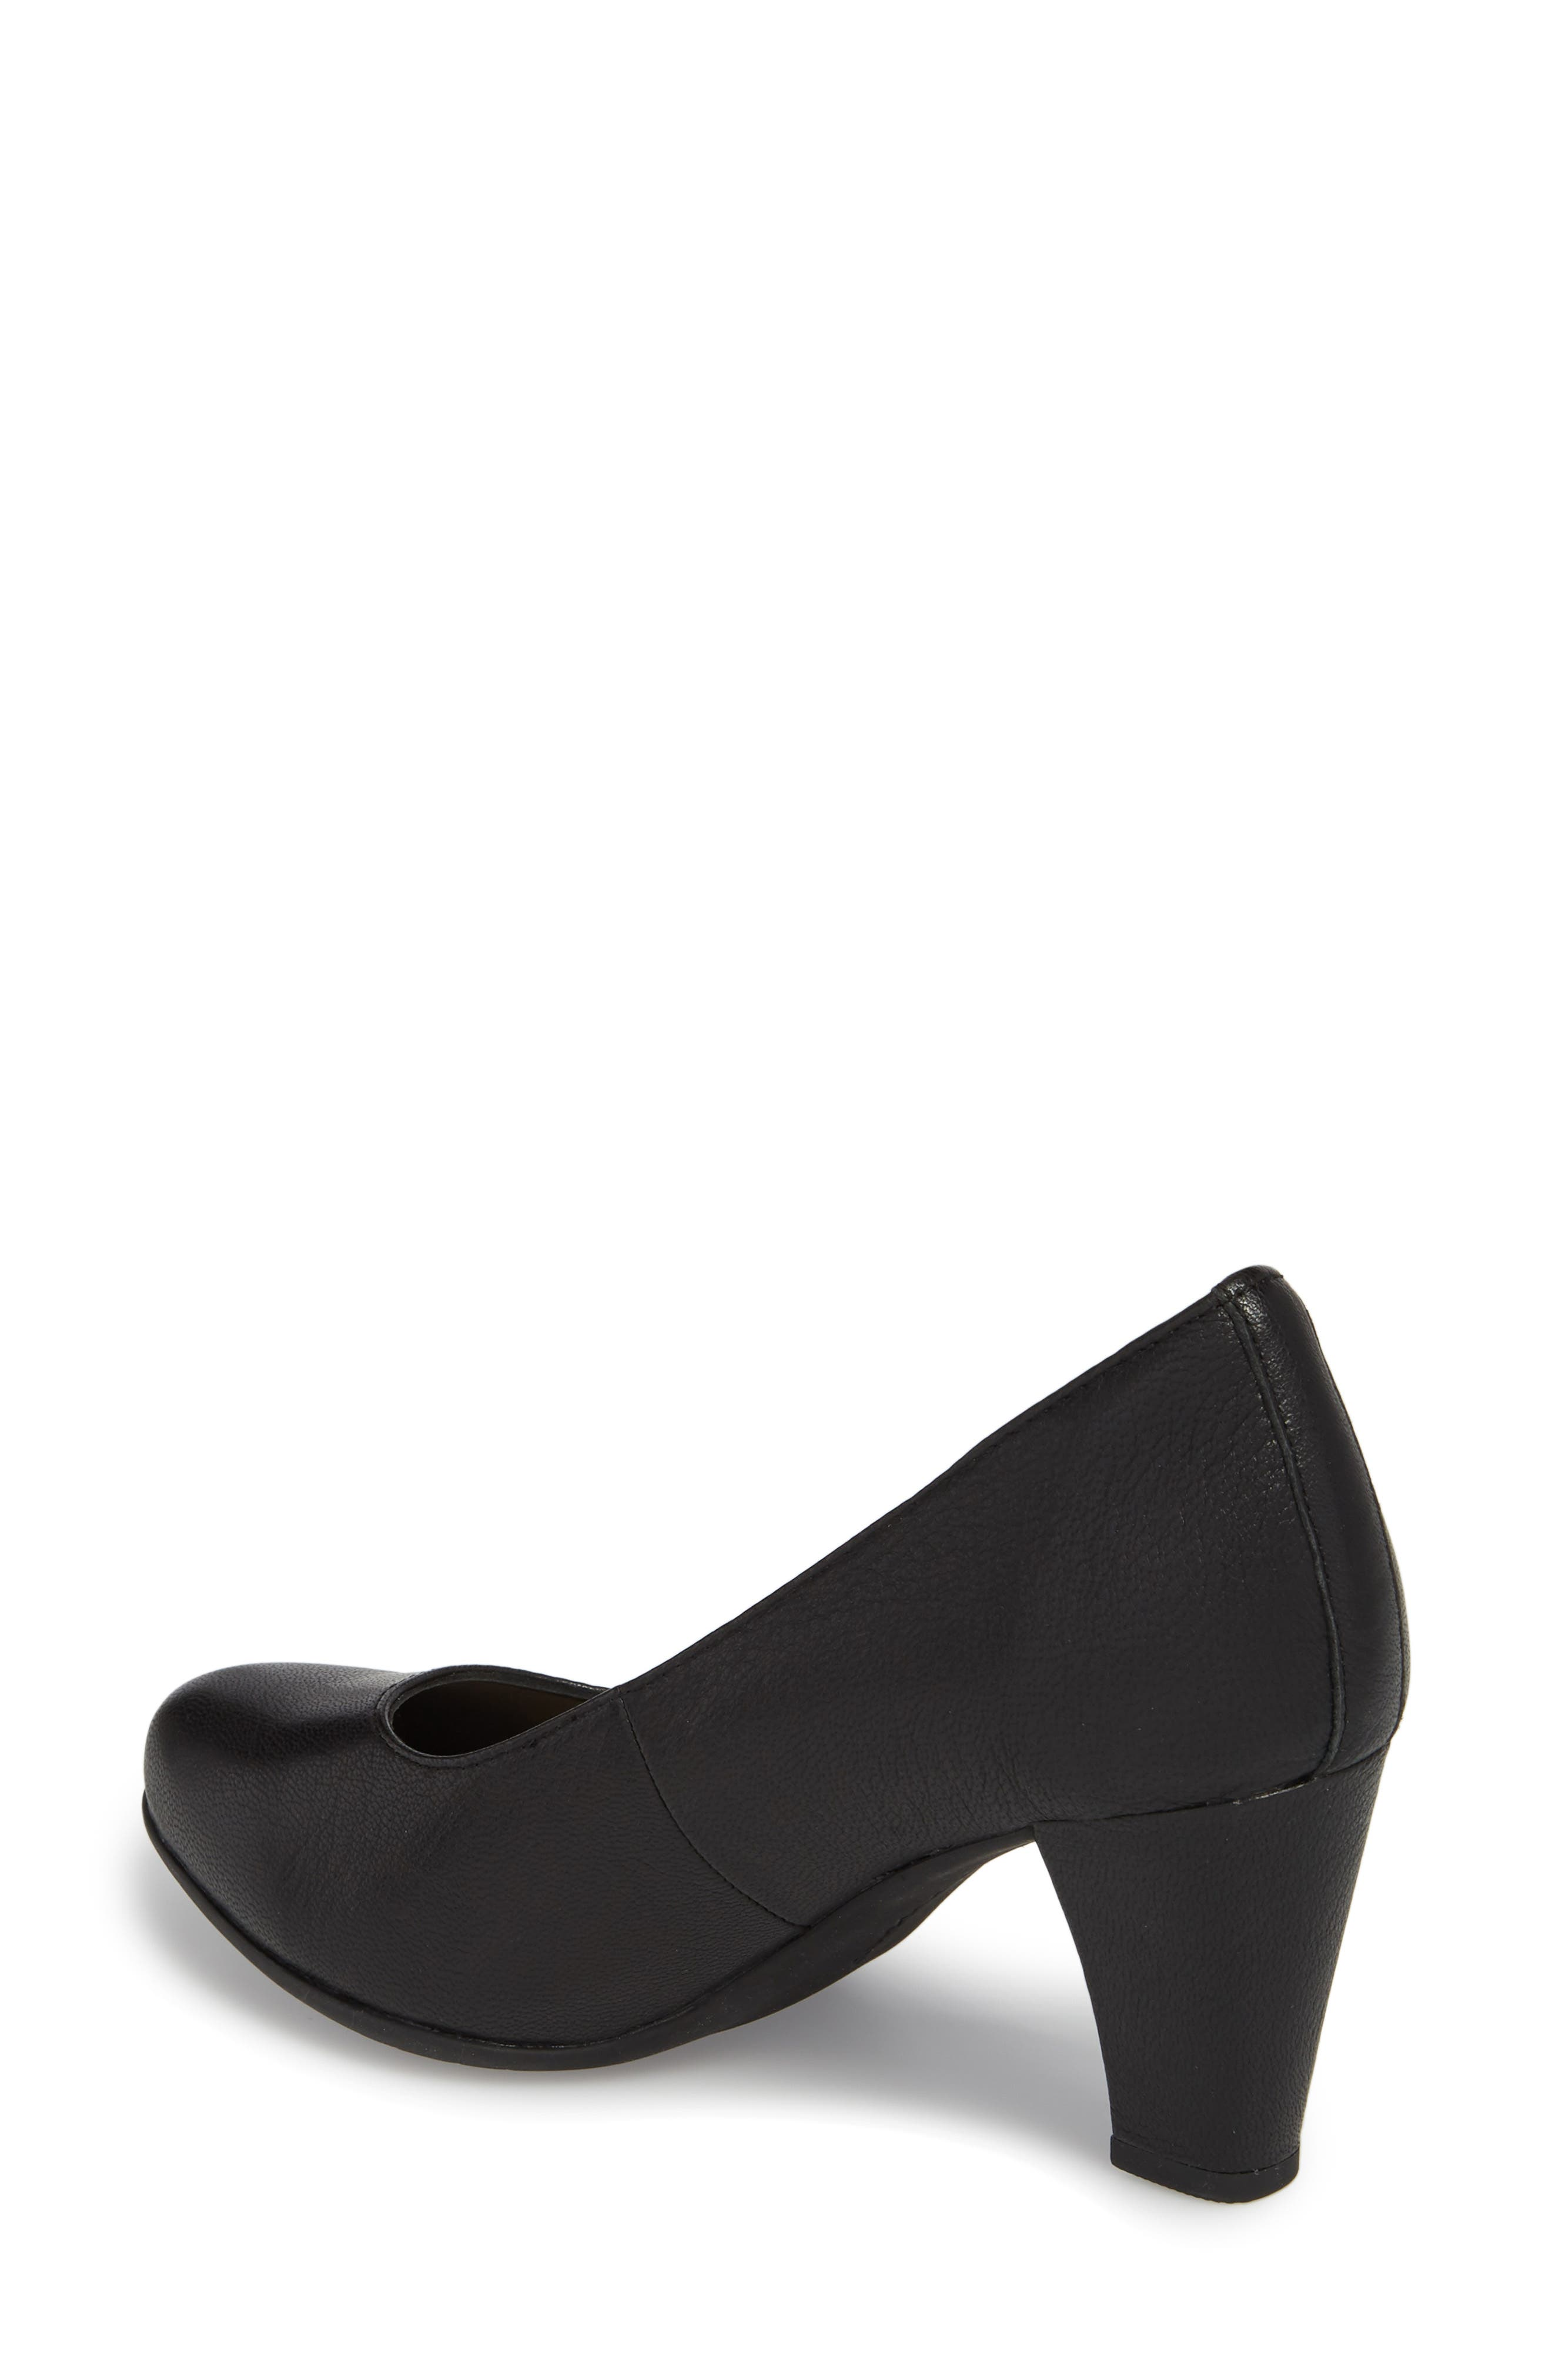 Minam Meaghan Pump,                             Alternate thumbnail 2, color,                             Black Leather